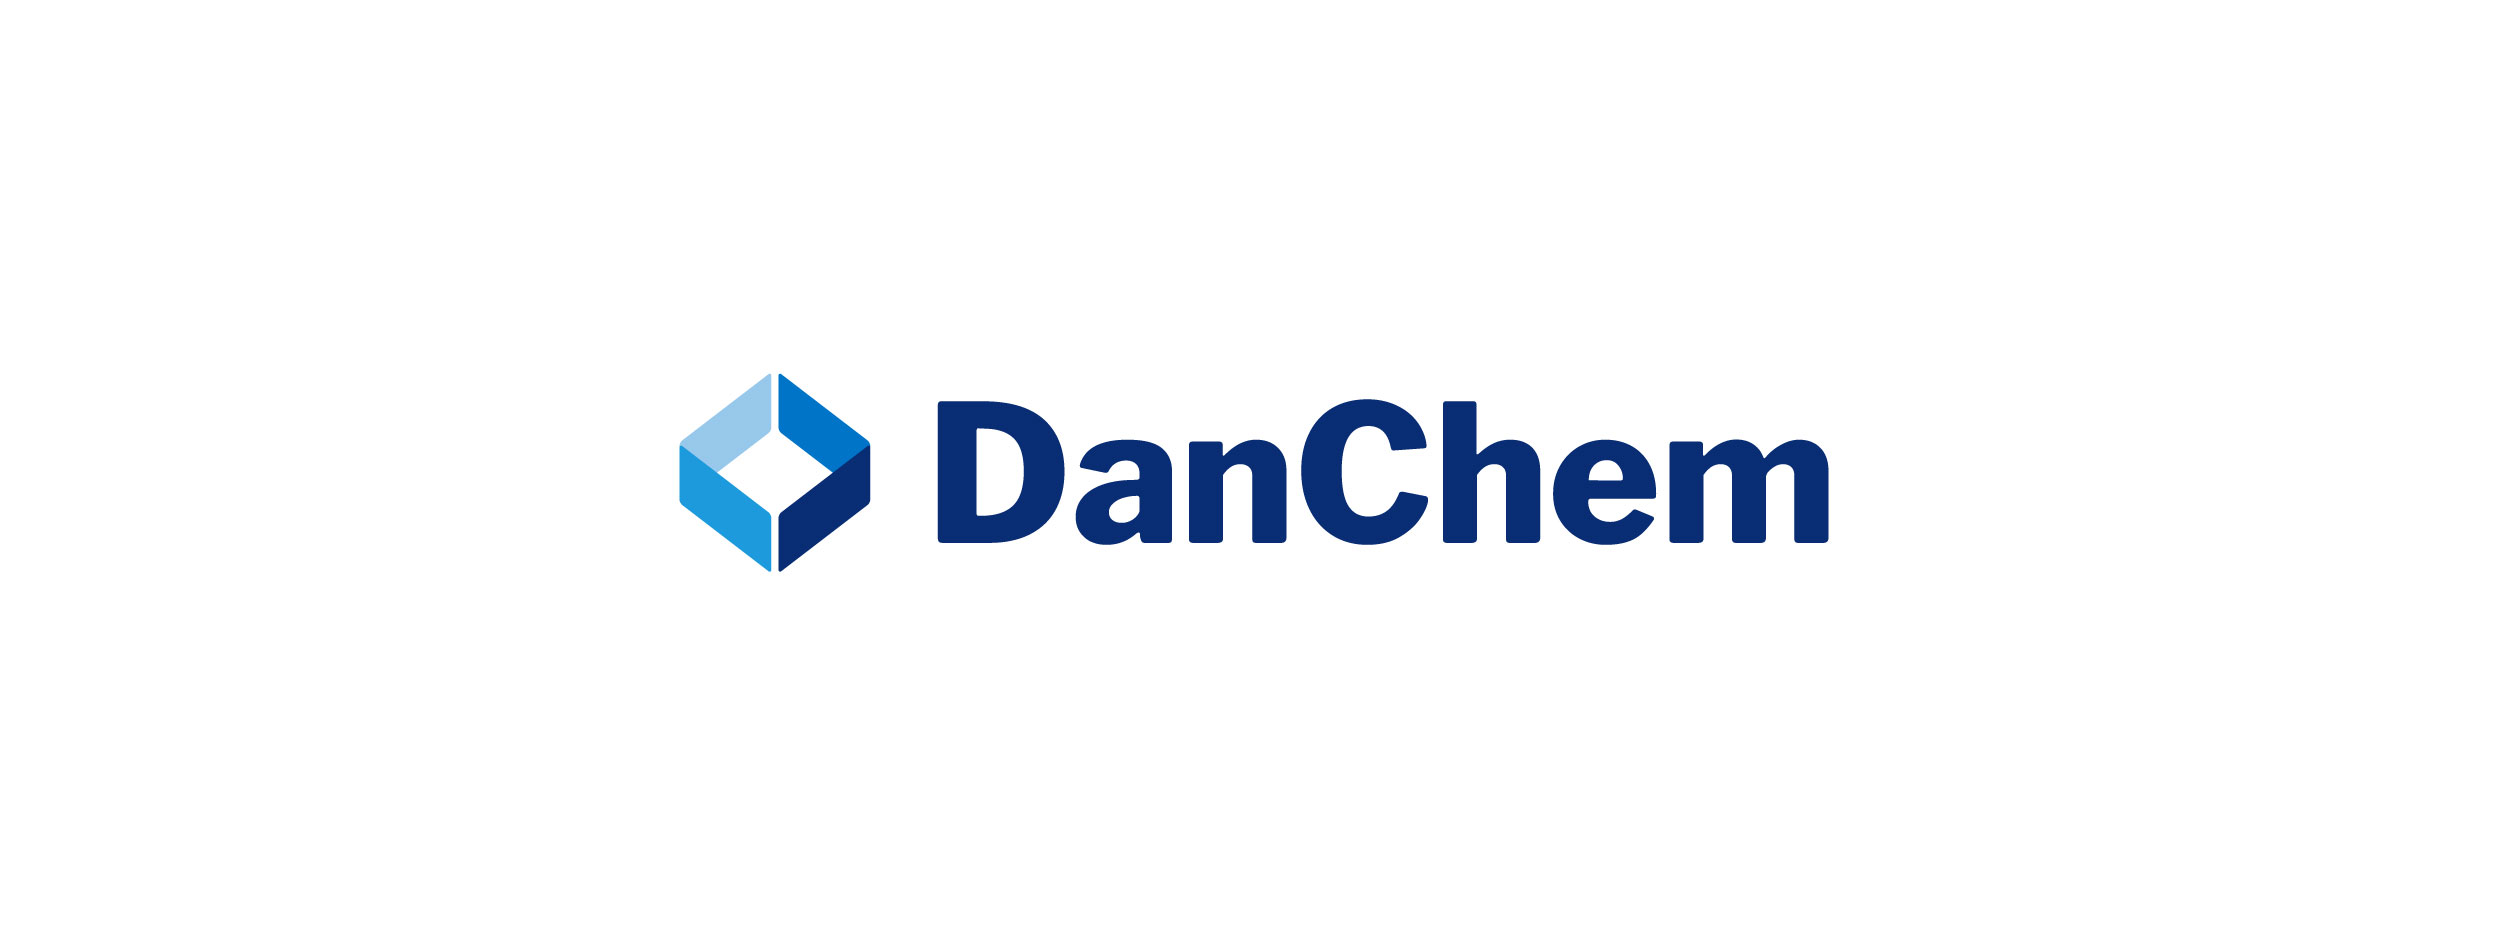 DanChem Logo Development